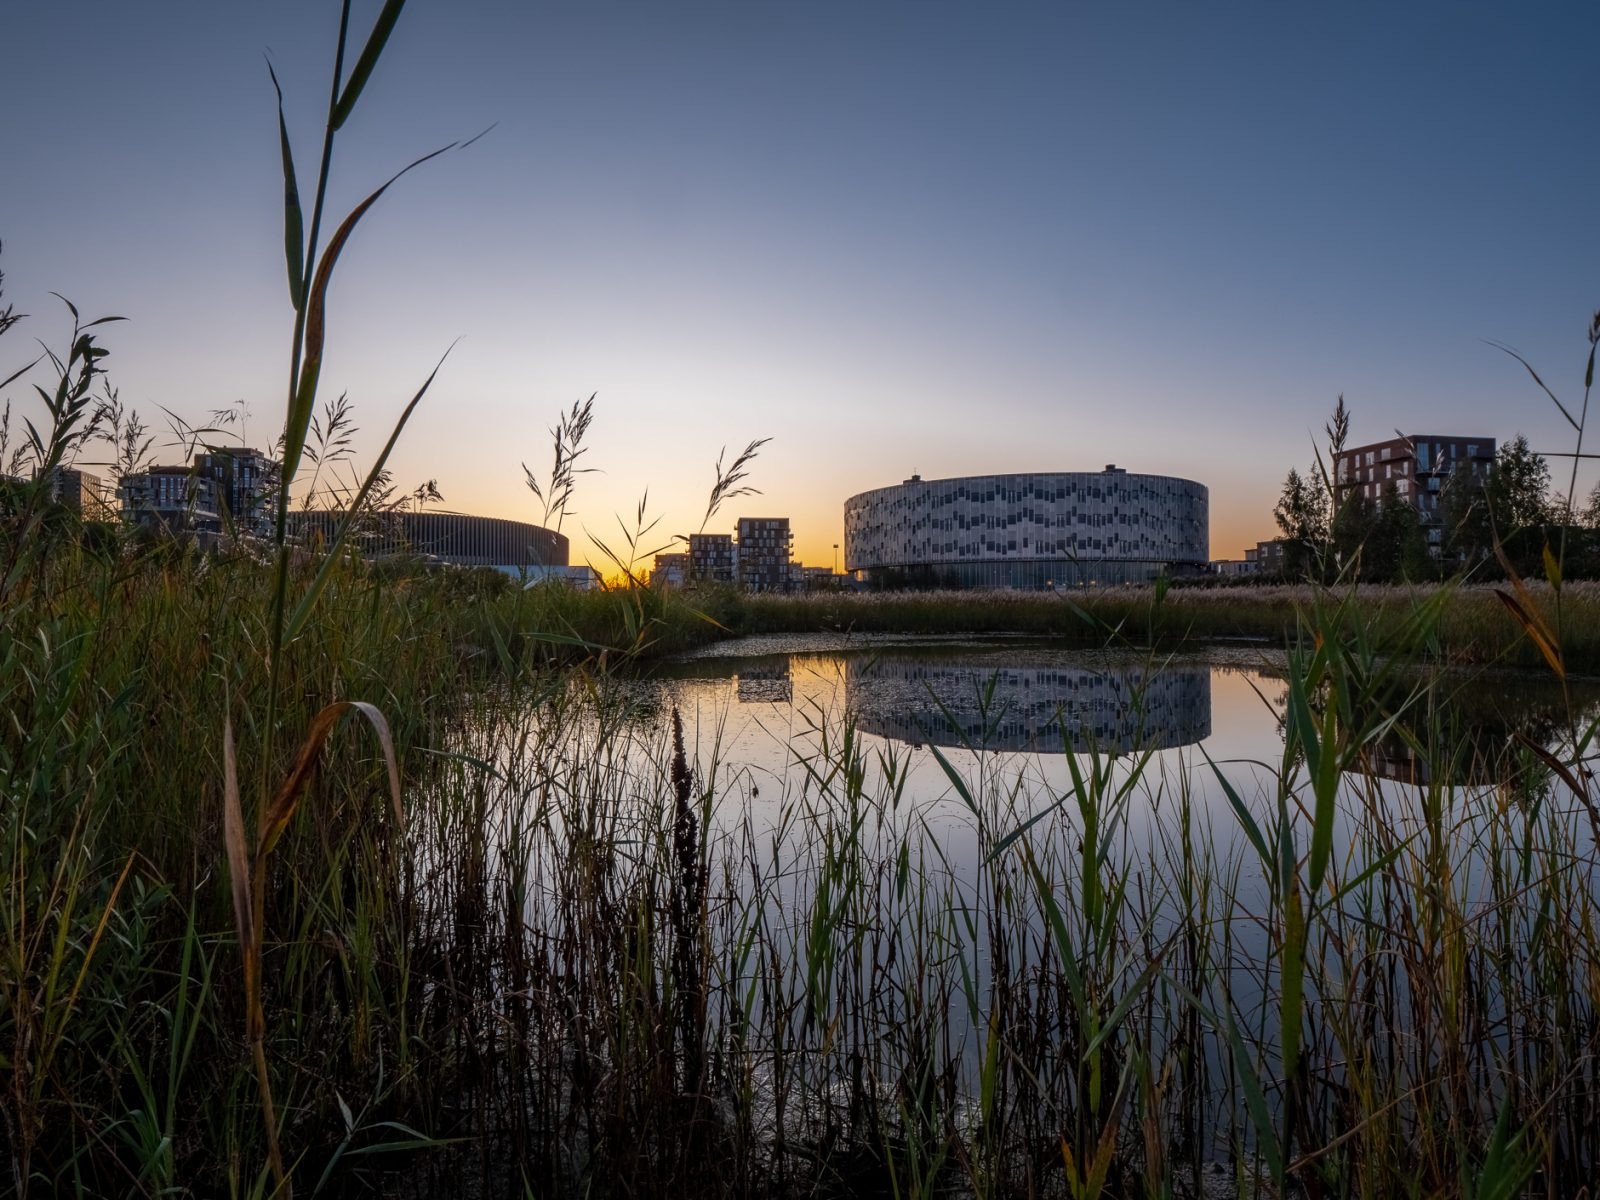 Ørestad at sunrise, Kalvebod Fælled Skole and Royal Arena, fall 2019, by Ørestad based photographer Stefan Grage